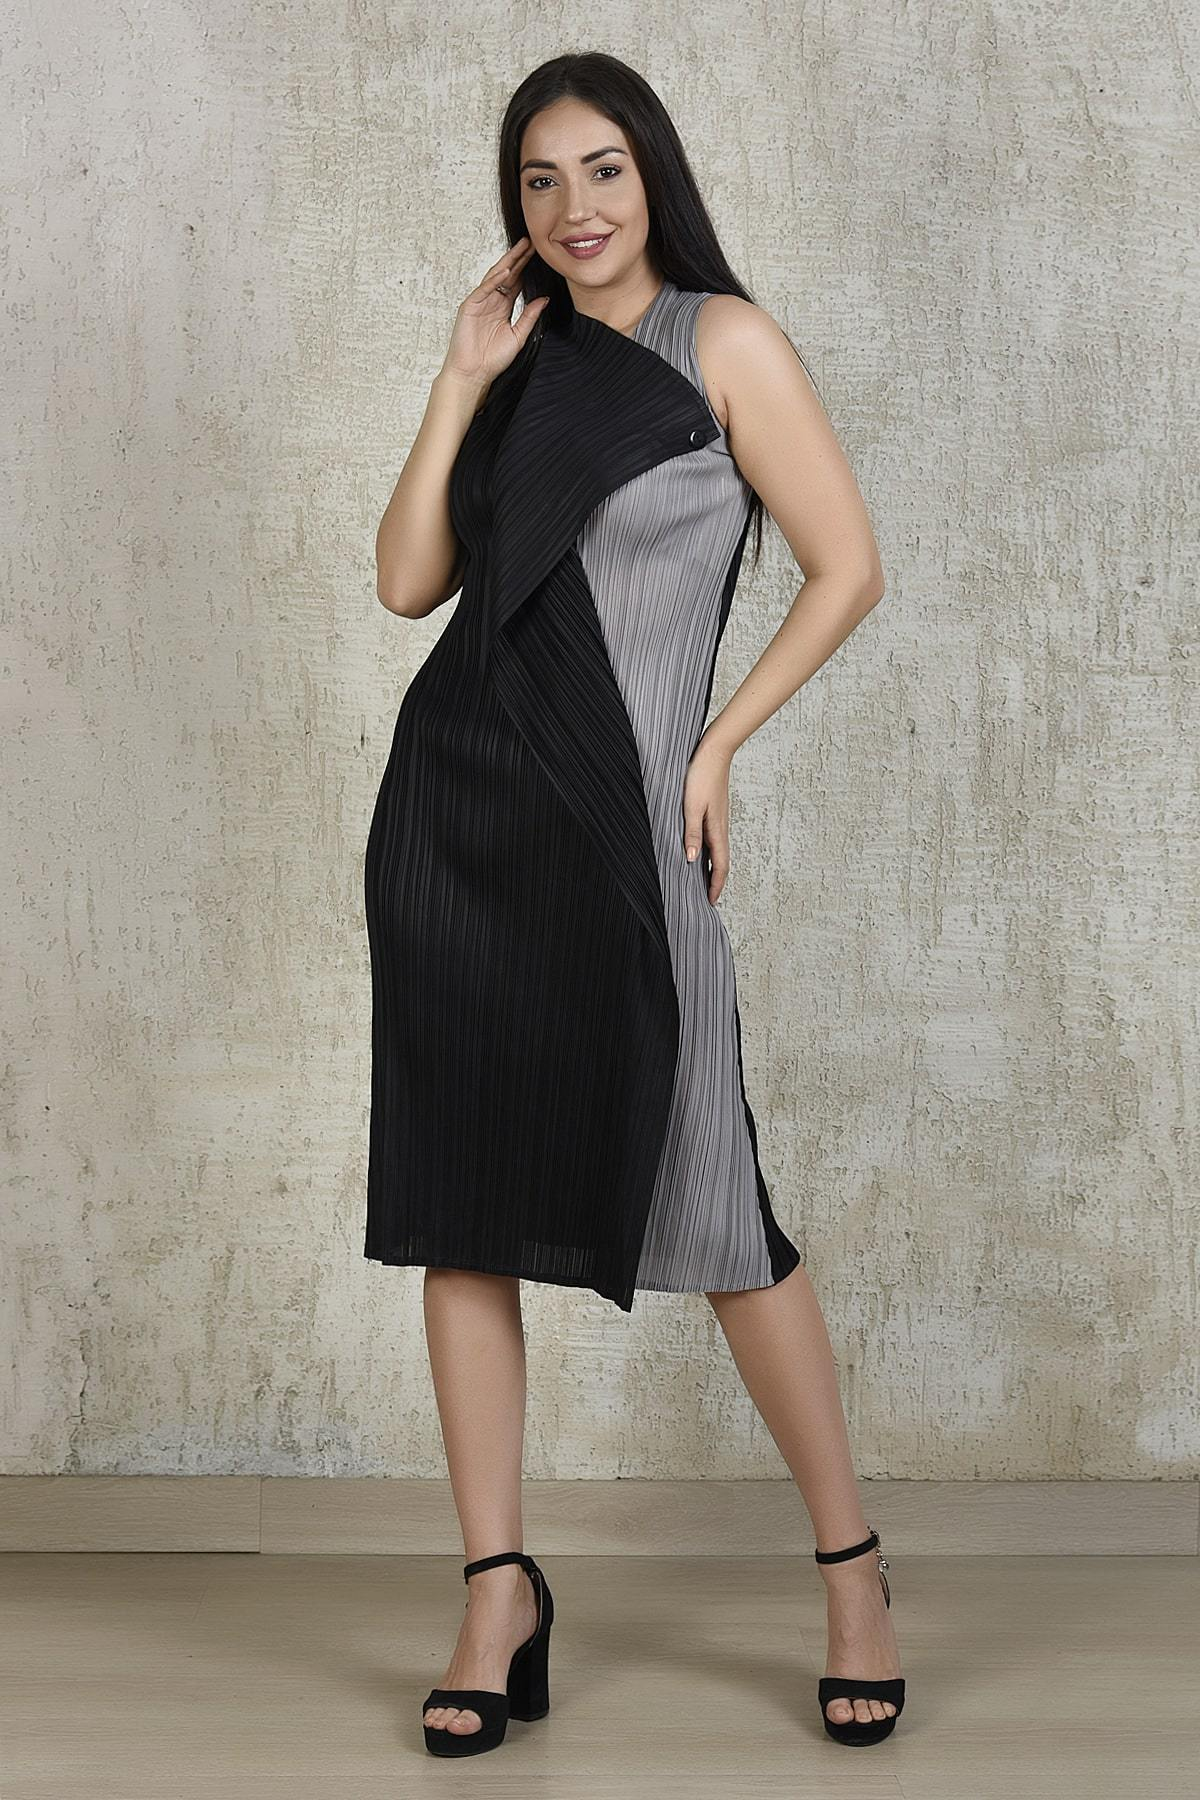 Tasuvure Dresses Pencil flap button dress in black and grey